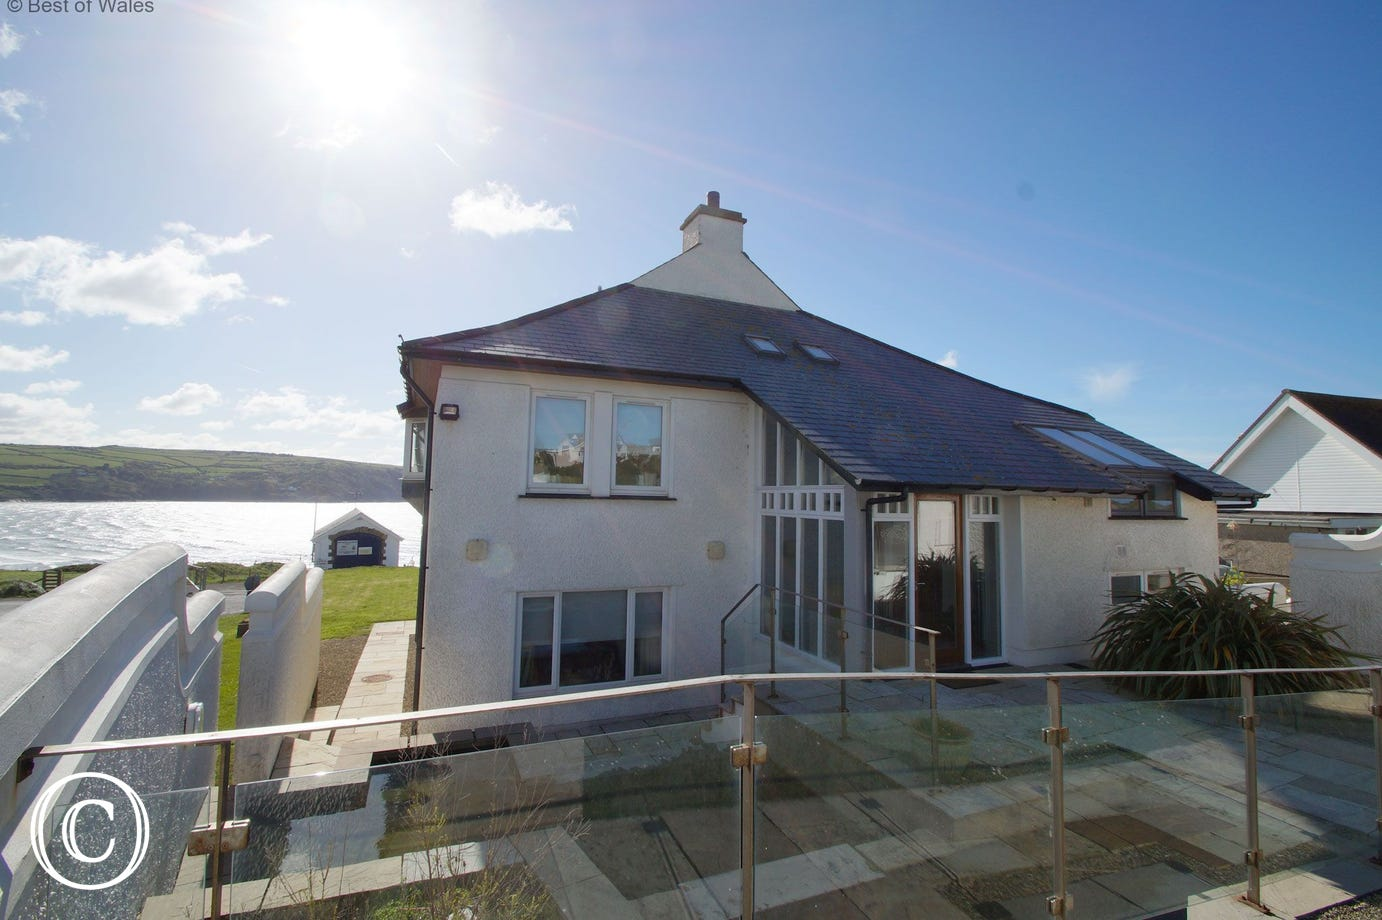 Spectacular Gwbert Holiday Cottage